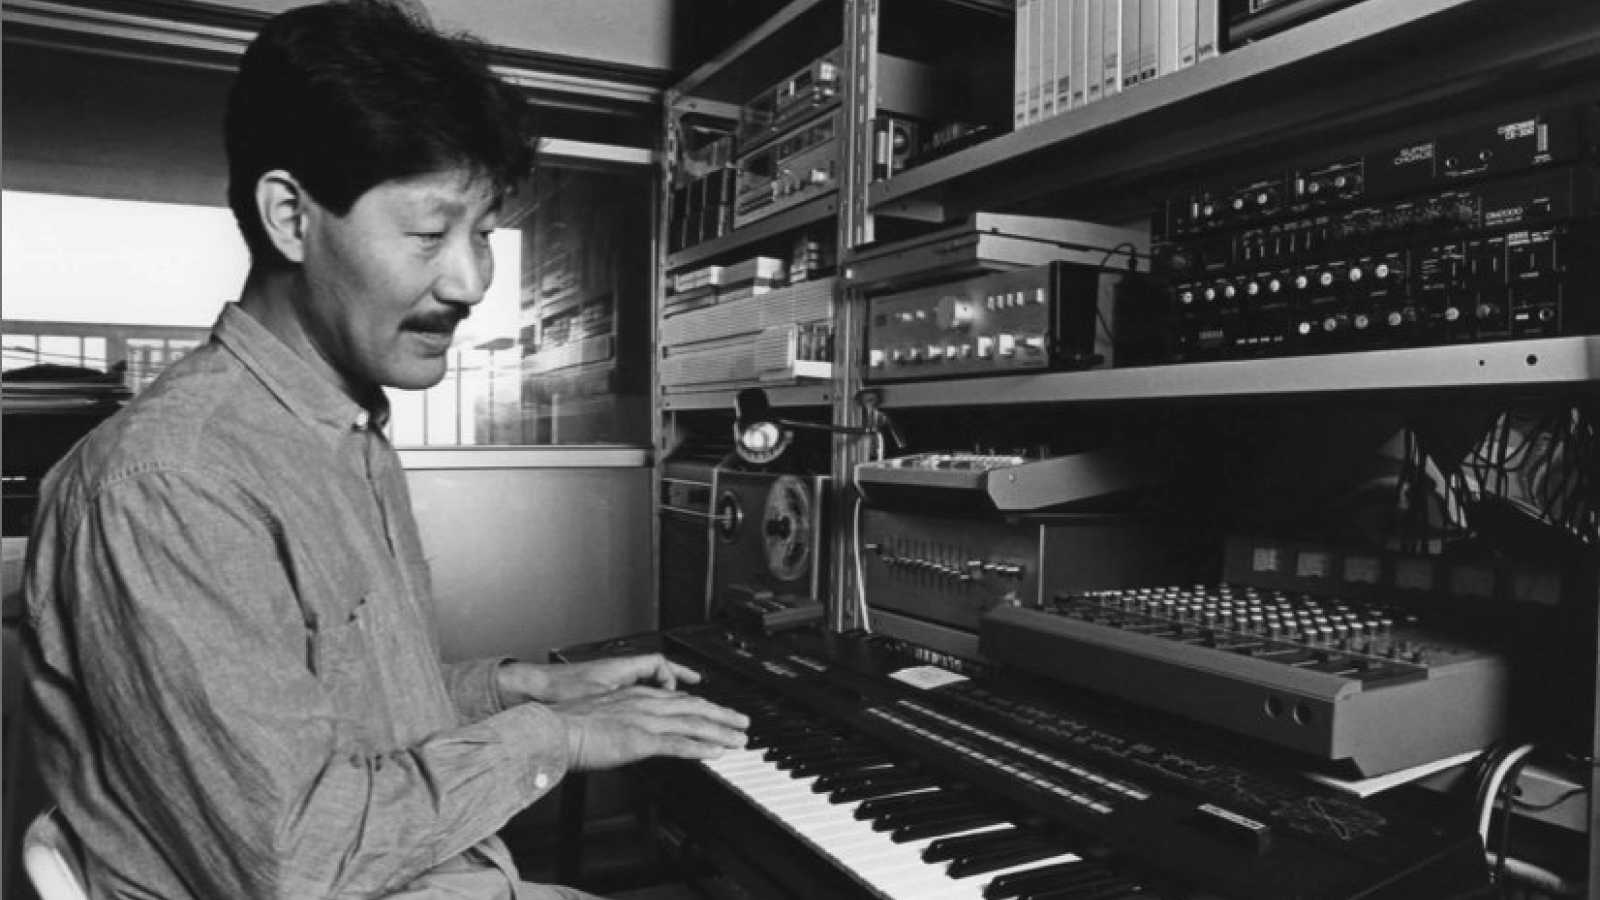 Light In The Attic Records to Reissue Hiroshi Yoshimura's